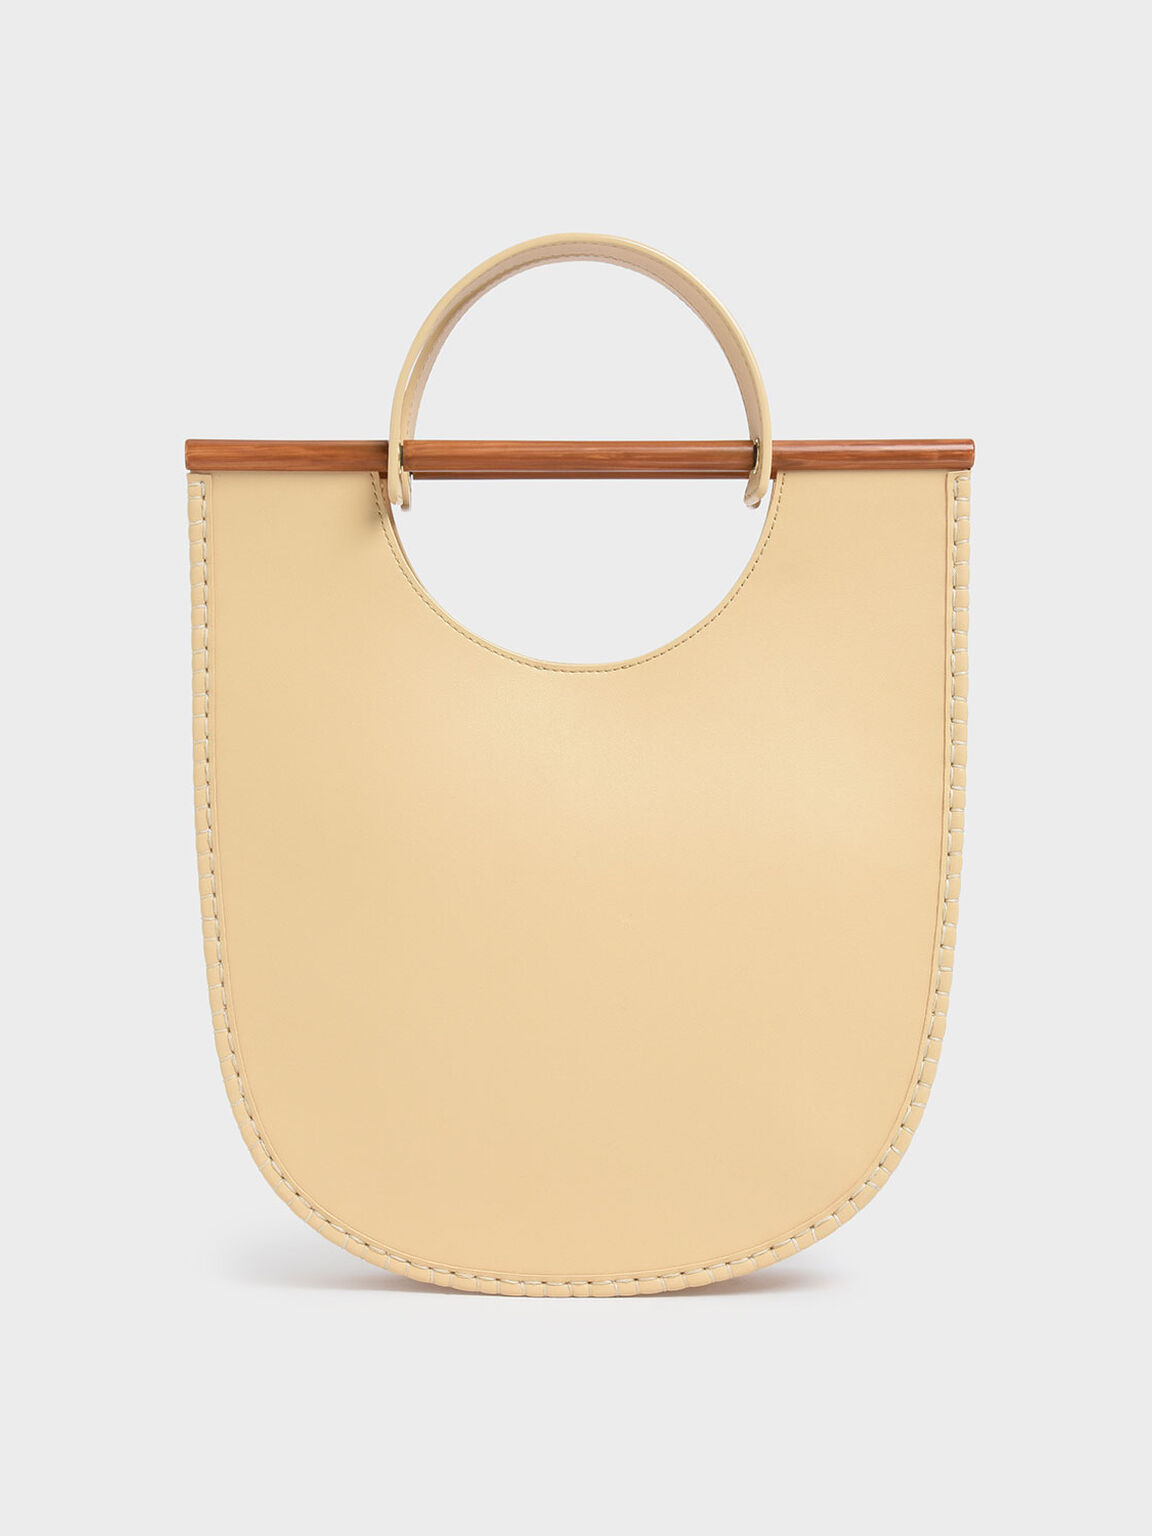 U-Shaped Whipstitch Tote, Yellow, hi-res